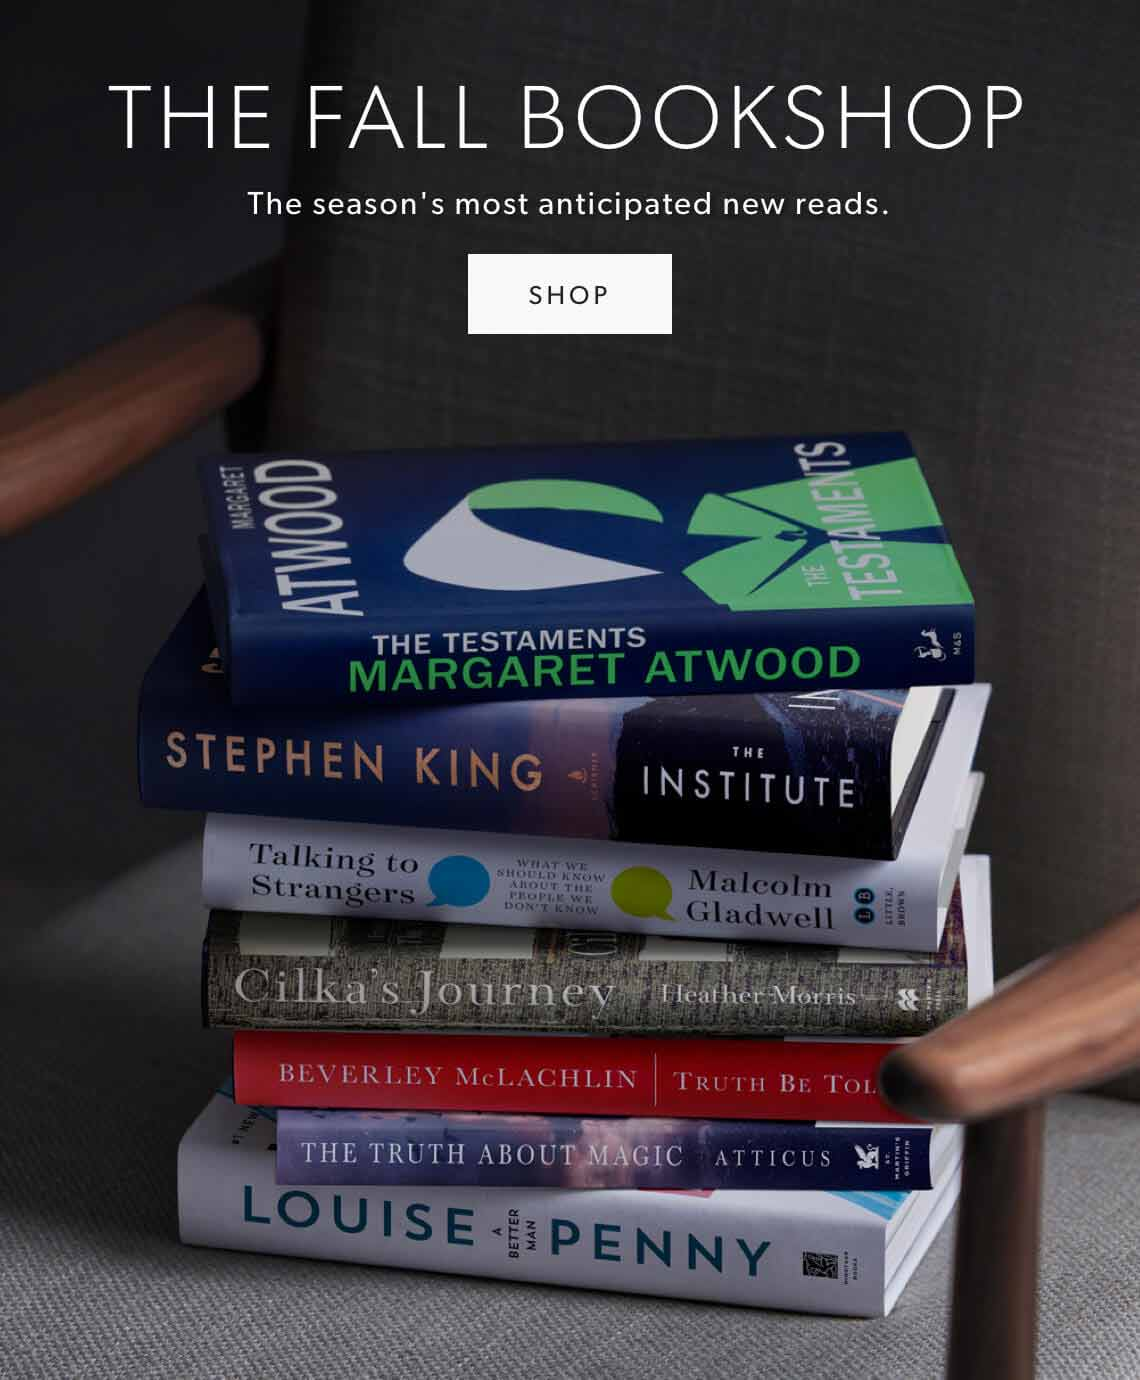 The Fall Bookshop